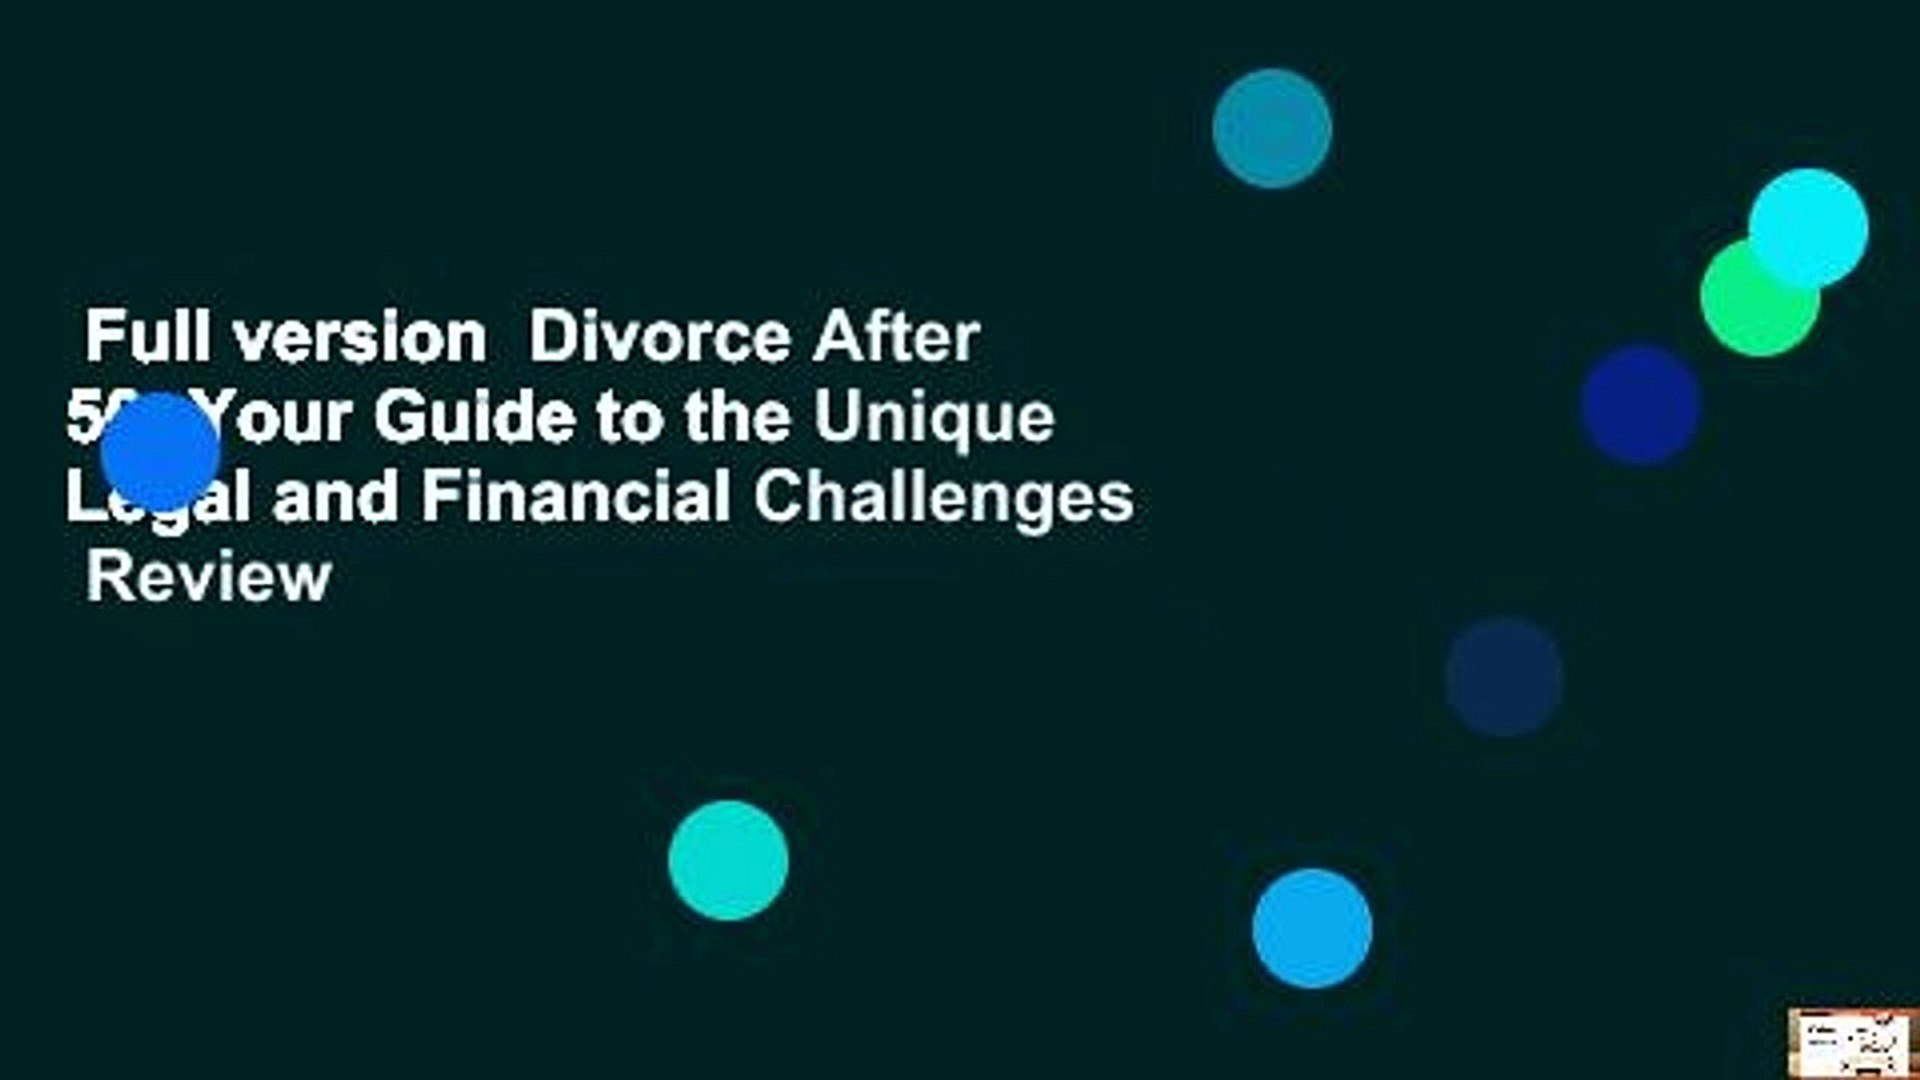 Full version  Divorce After 50: Your Guide to the Unique Legal and Financial Challenges  Review